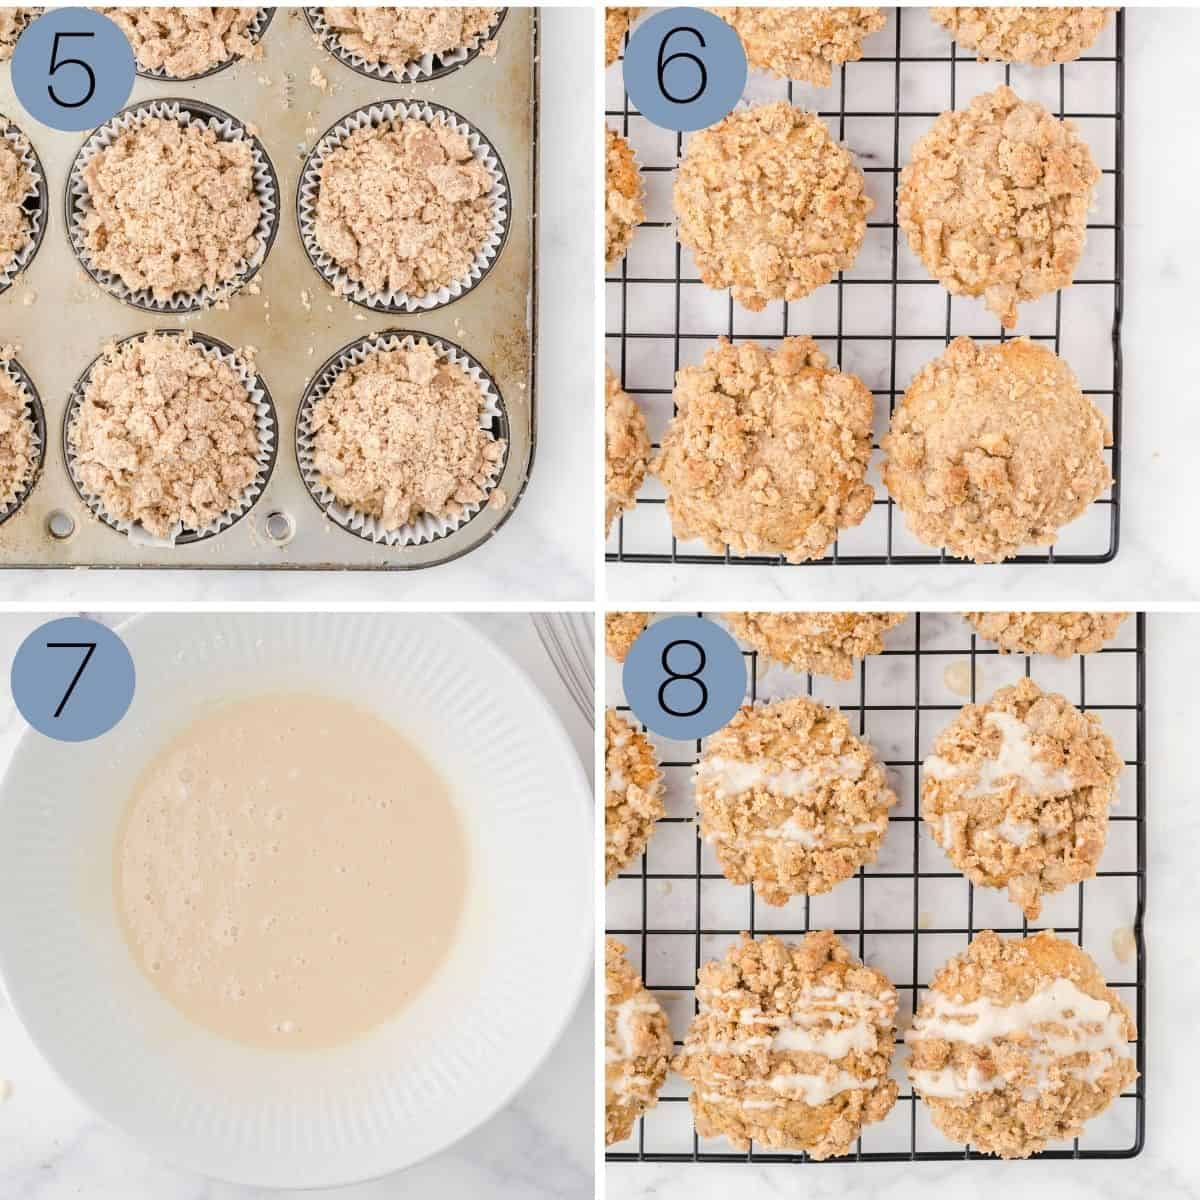 crumb topping on muffins with vanilla glaze drizzled on top